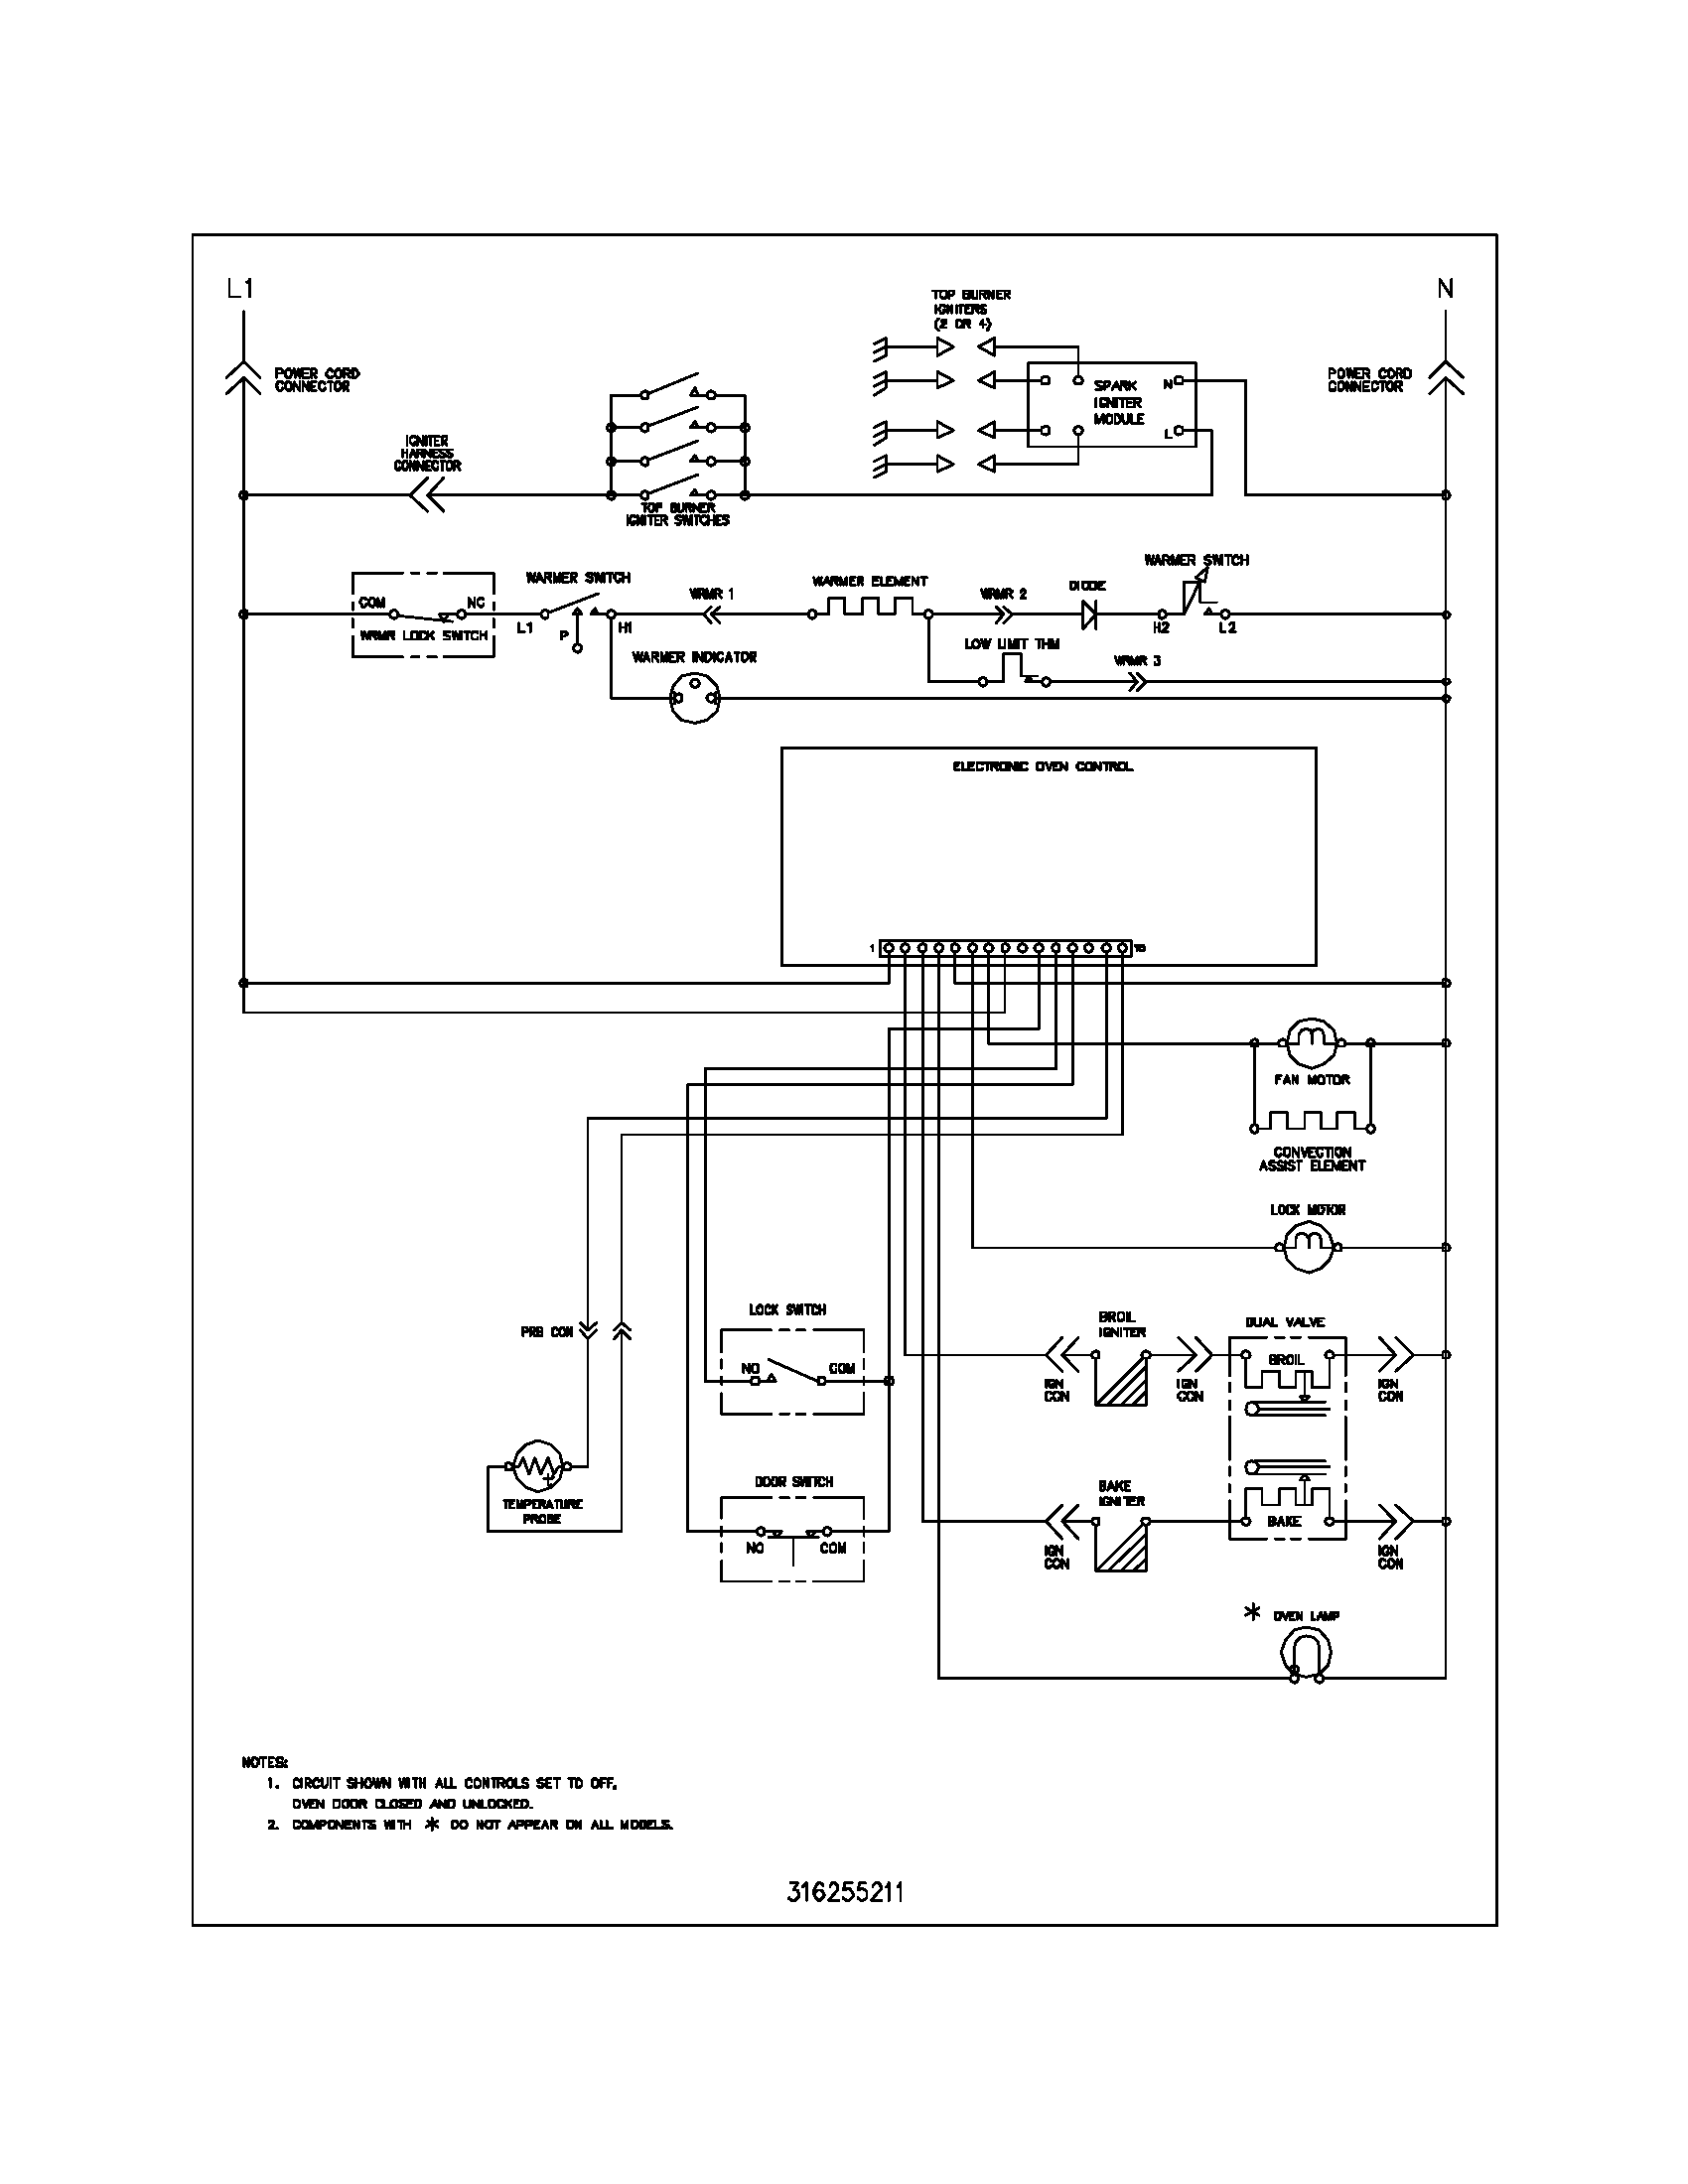 Ge Oven Wiring Schematic Trusted Diagrams Microwave Diagram For Model Jvm1440bh01 Electric Range Breaker Data U2022